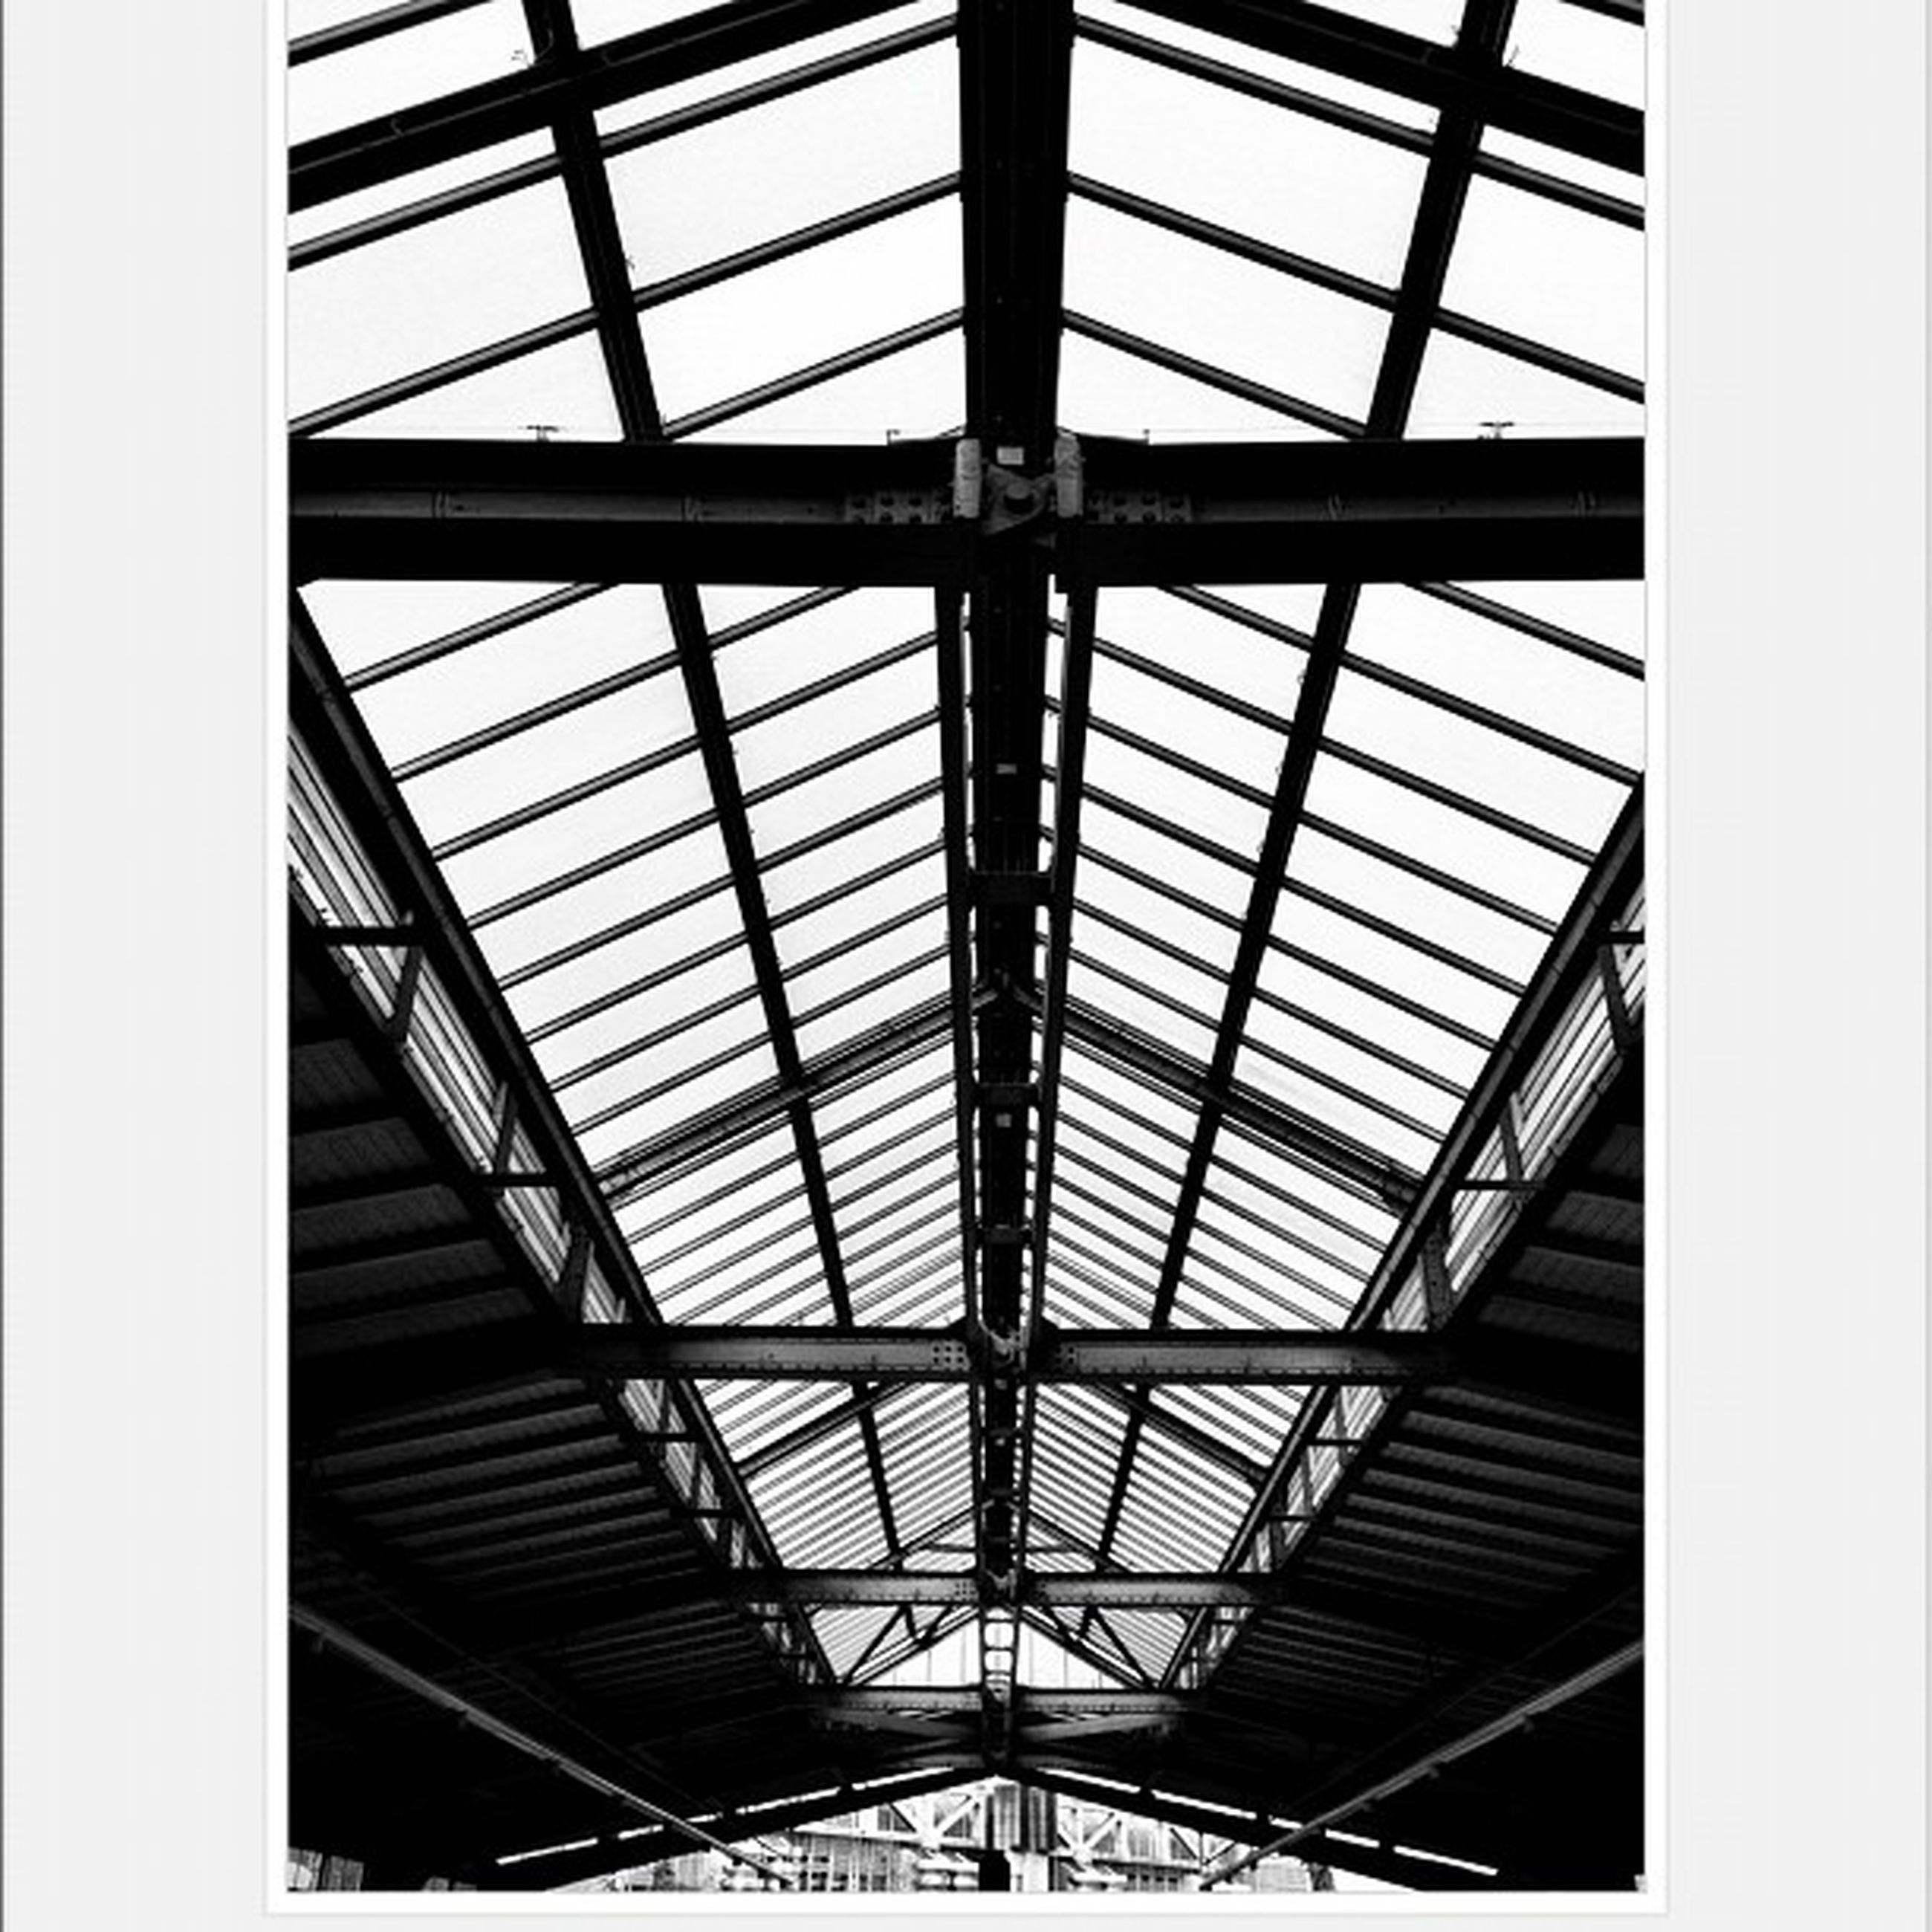 indoors, ceiling, architecture, built structure, skylight, low angle view, glass - material, pattern, transfer print, window, transparent, architectural feature, modern, full frame, design, day, auto post production filter, directly below, no people, building